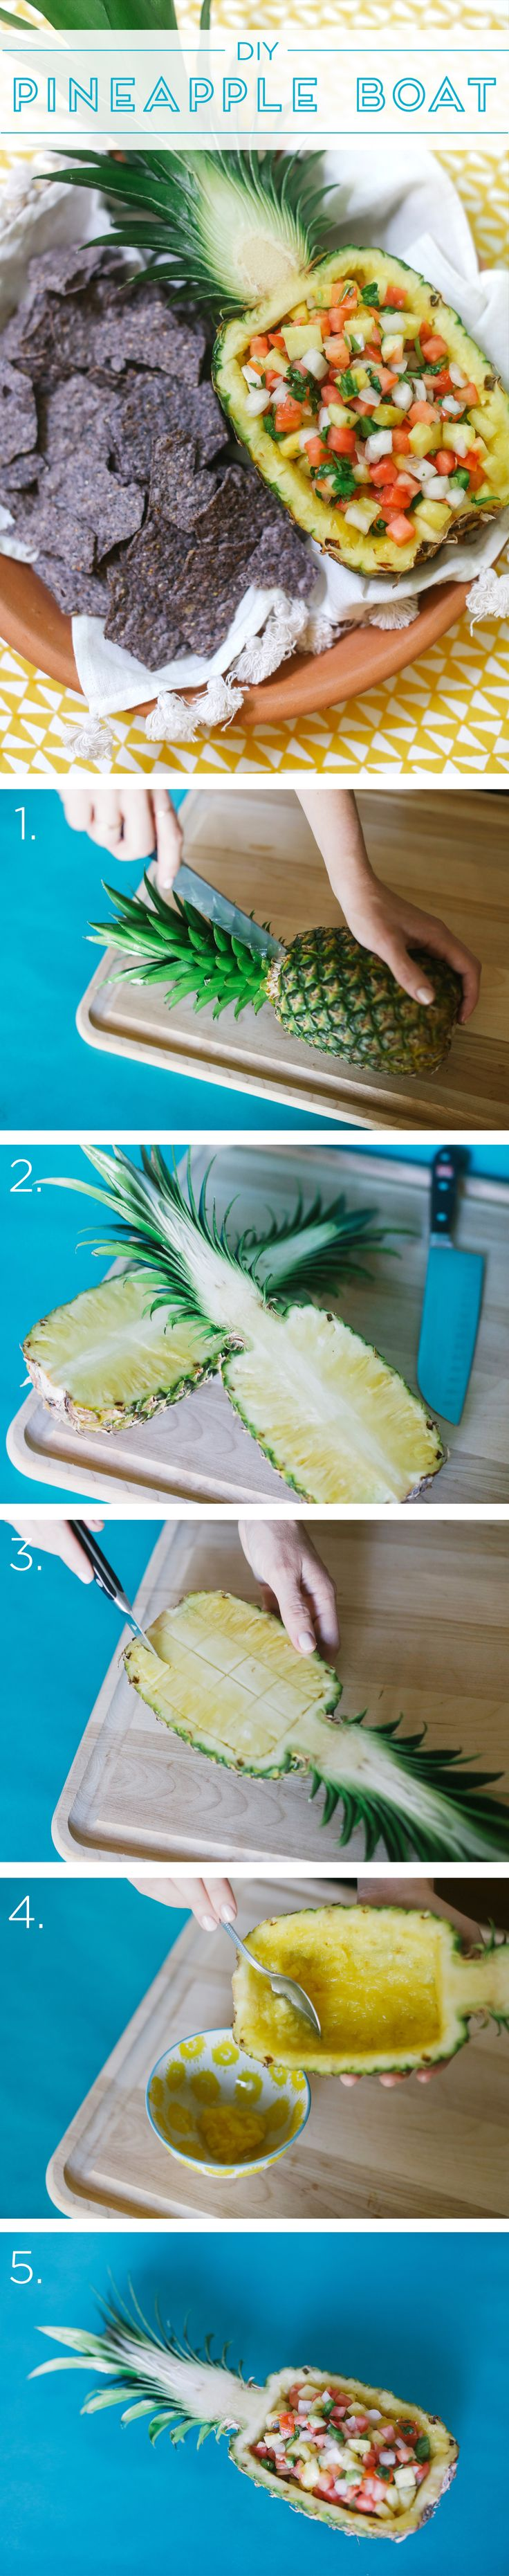 Present dip in a #DIY pineapple boat for maximum wow-factor! Pair with @fstgchips for a more healthy take on chips & dip. (Cool Kids Cakes)